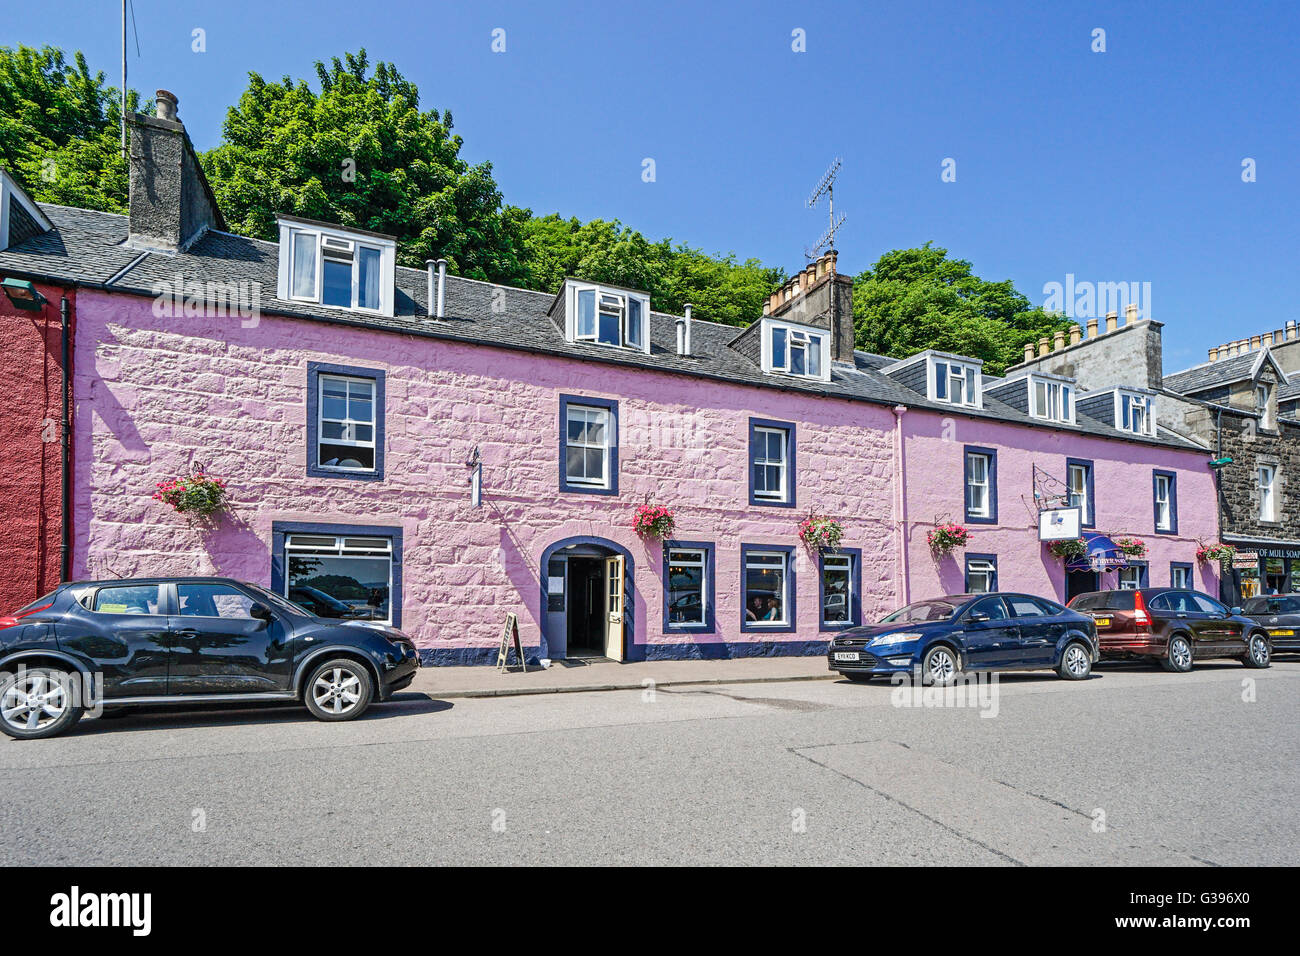 The Tobermory Hotel in Tobermory Mull Scotland - Stock Image